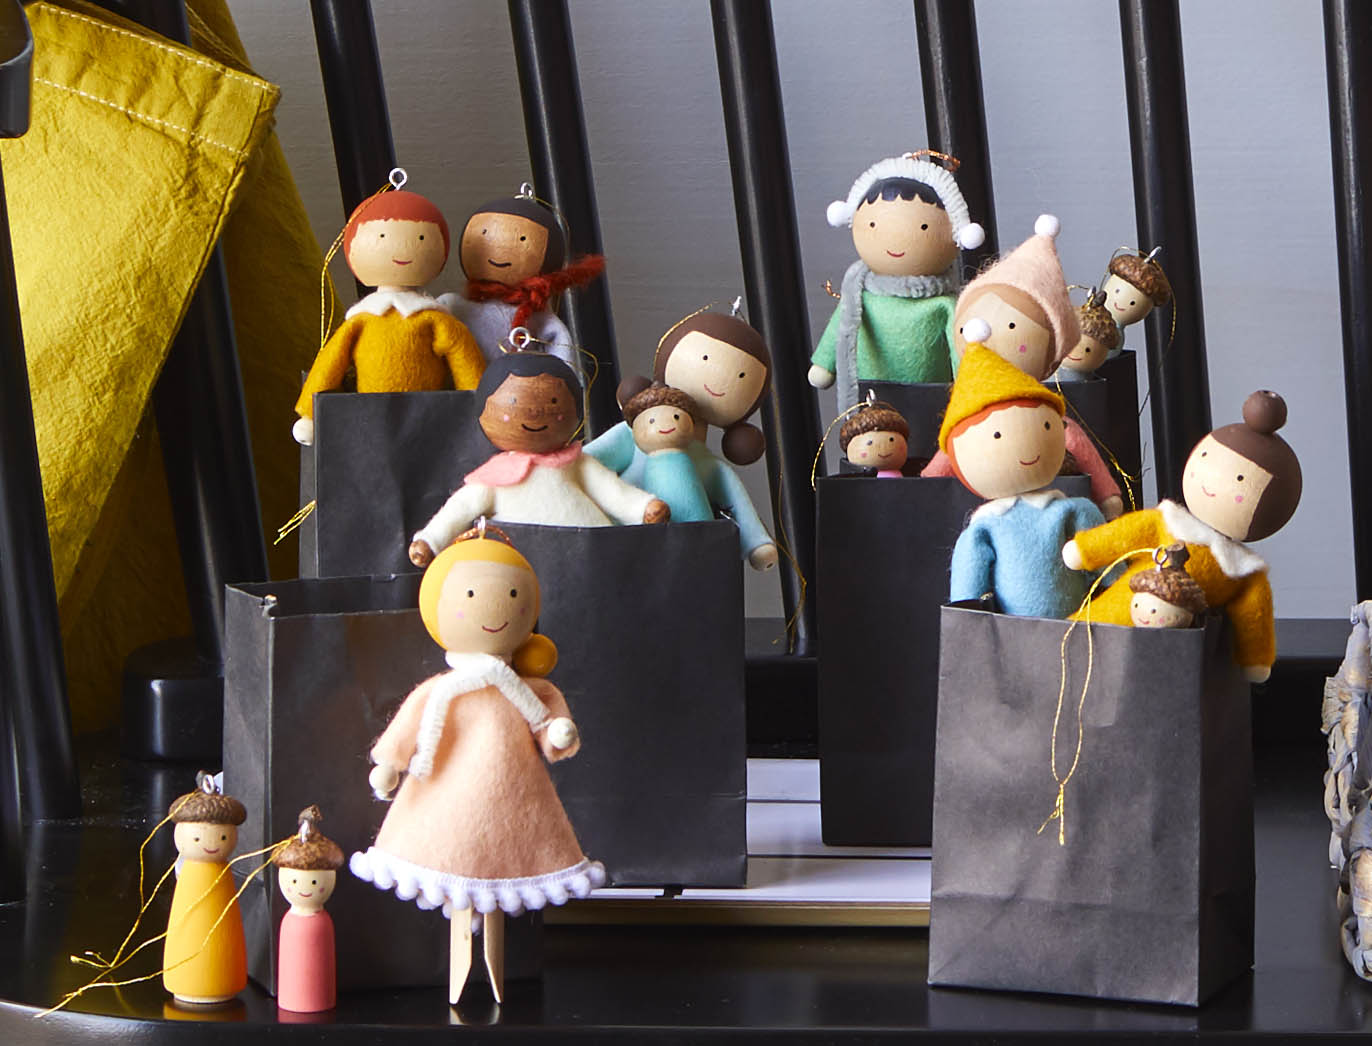 Wood dolls with brightly colored fabric clothing